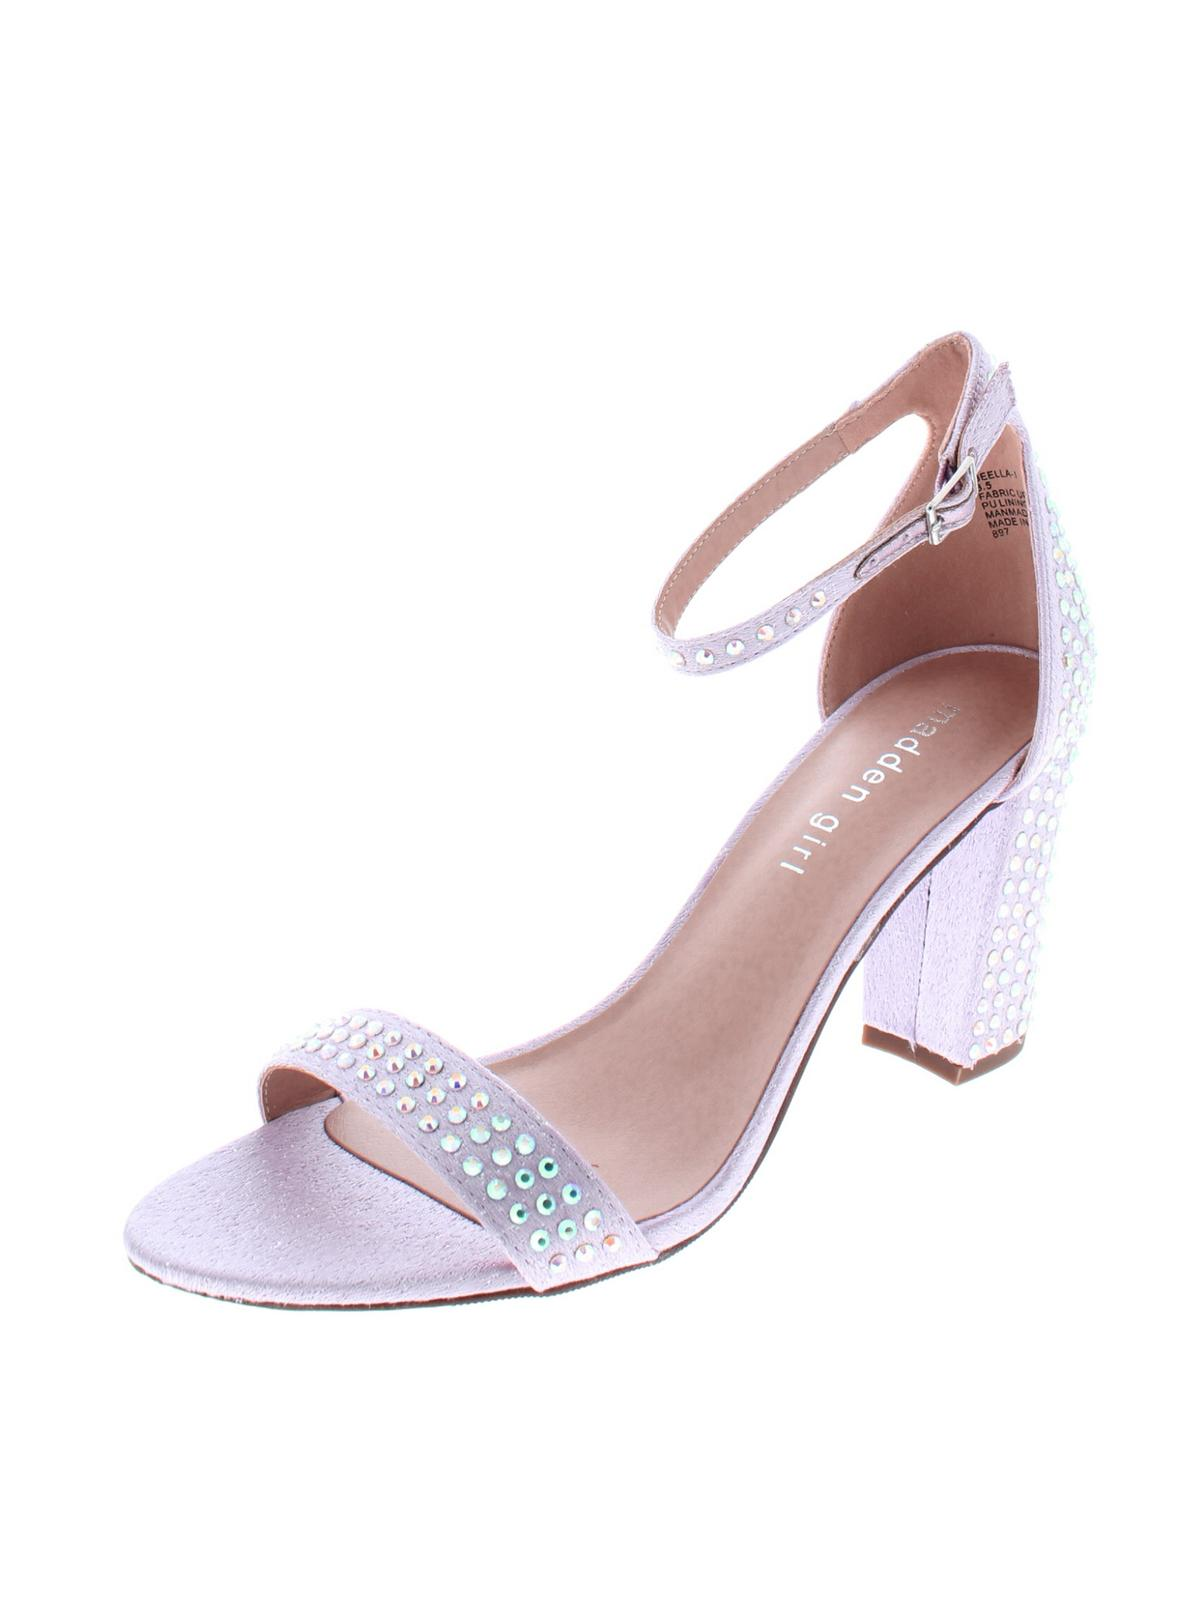 Madden Girl Womens Beella Metallic Night Out Heels